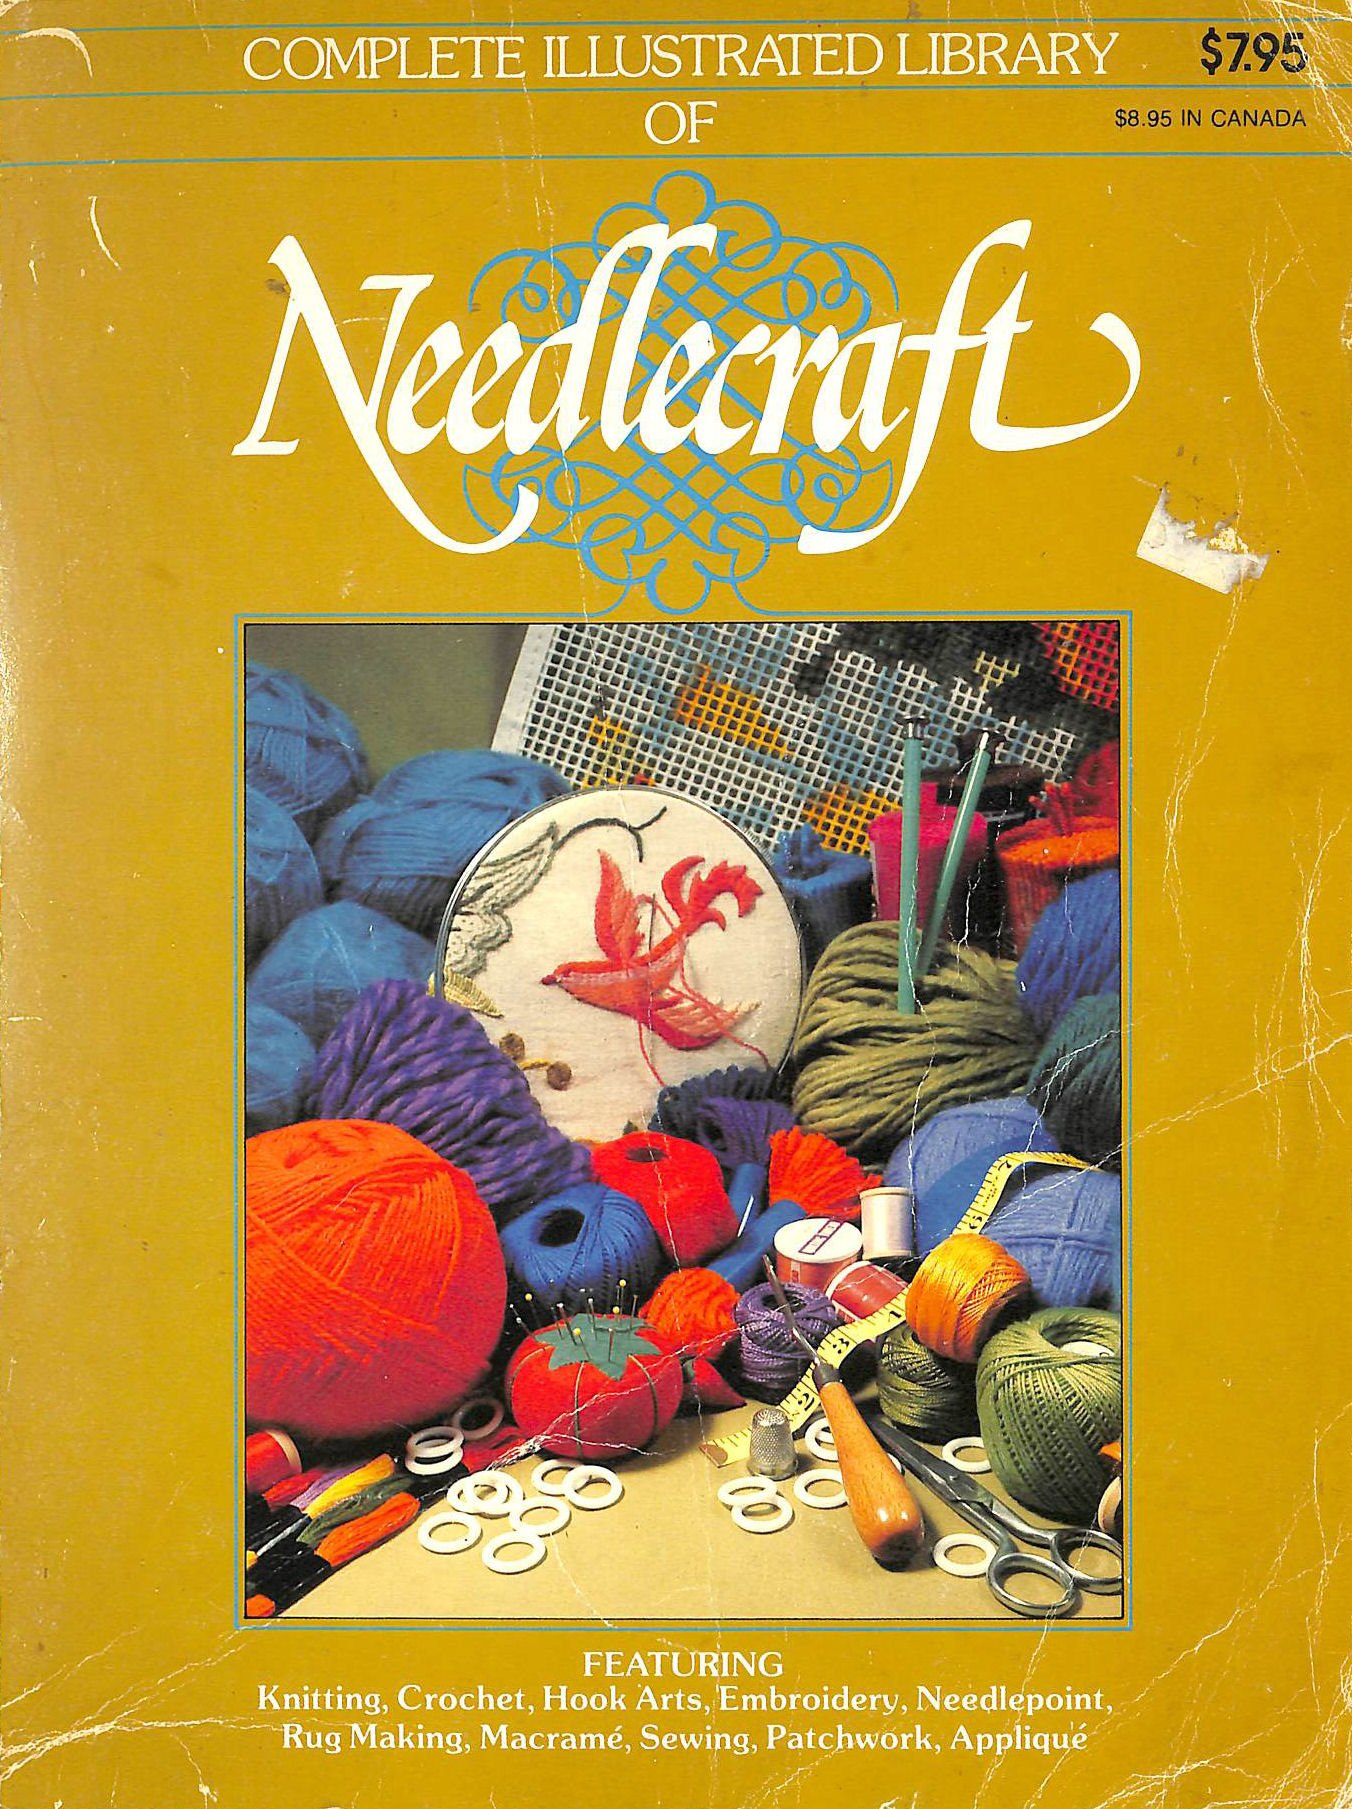 Image for Complete Illustrated Library of Needlecraft